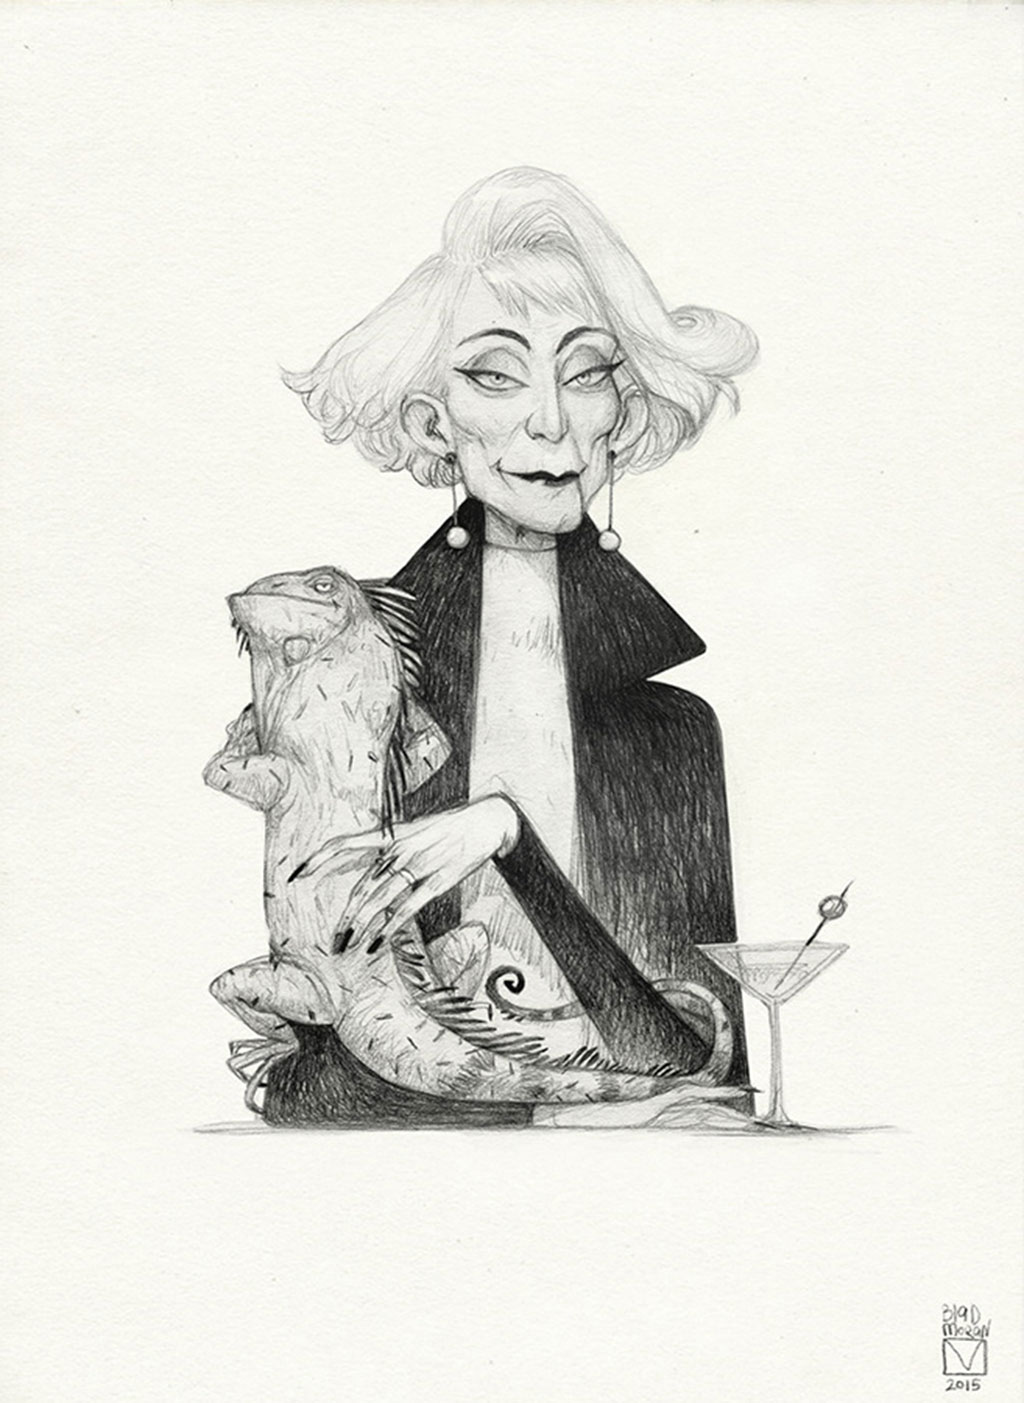 Drawing of a Character named Marina Lizardhard with a Martini and Iguana perched on her arm